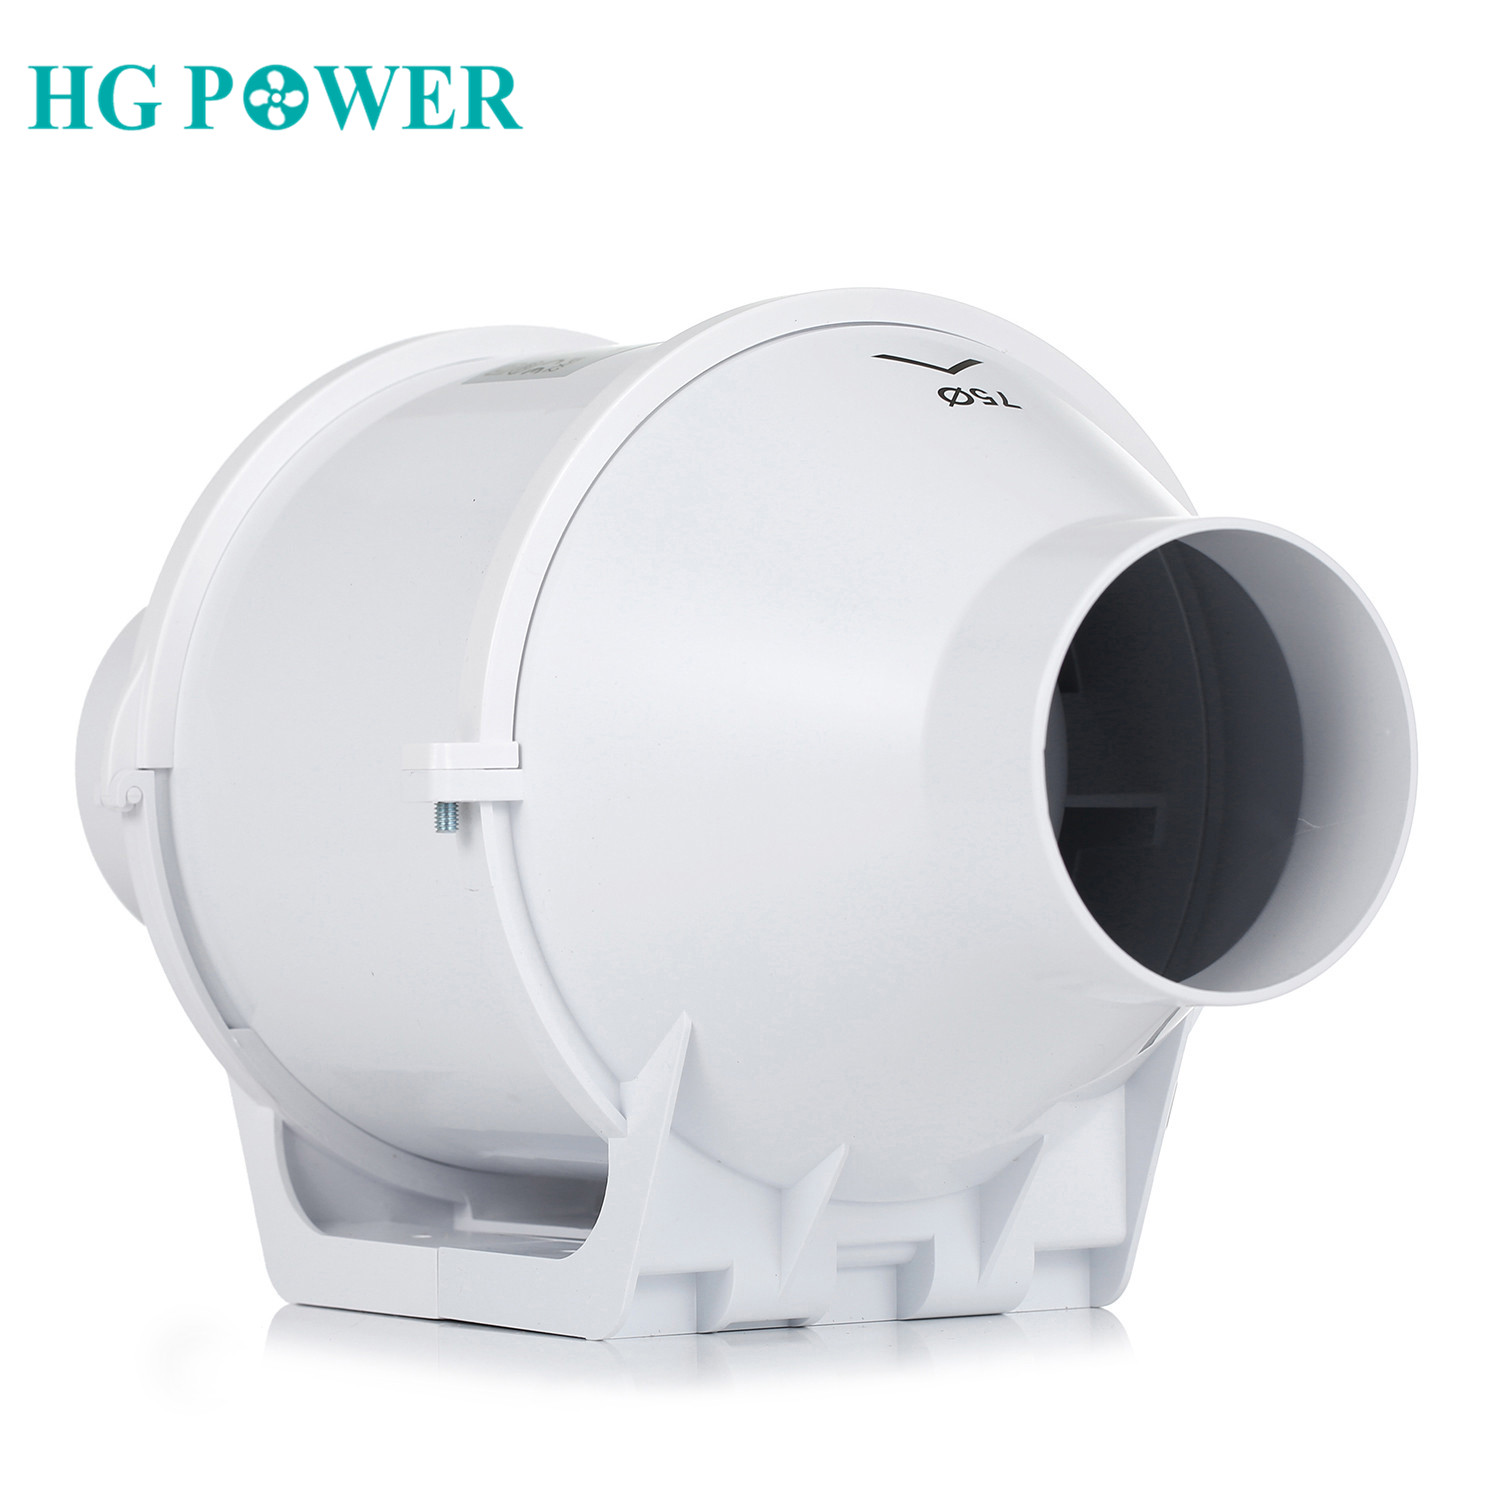 4inch <font><b>100mm</b></font> Home Inline <font><b>Duct</b></font> <font><b>Fan</b></font> Ventilation Tube <font><b>Fan</b></font> Vent Air Blower Exhaust <font><b>Fan</b></font> 220V Booster Turbo <font><b>Fan</b></font> for Household Grow Tent image